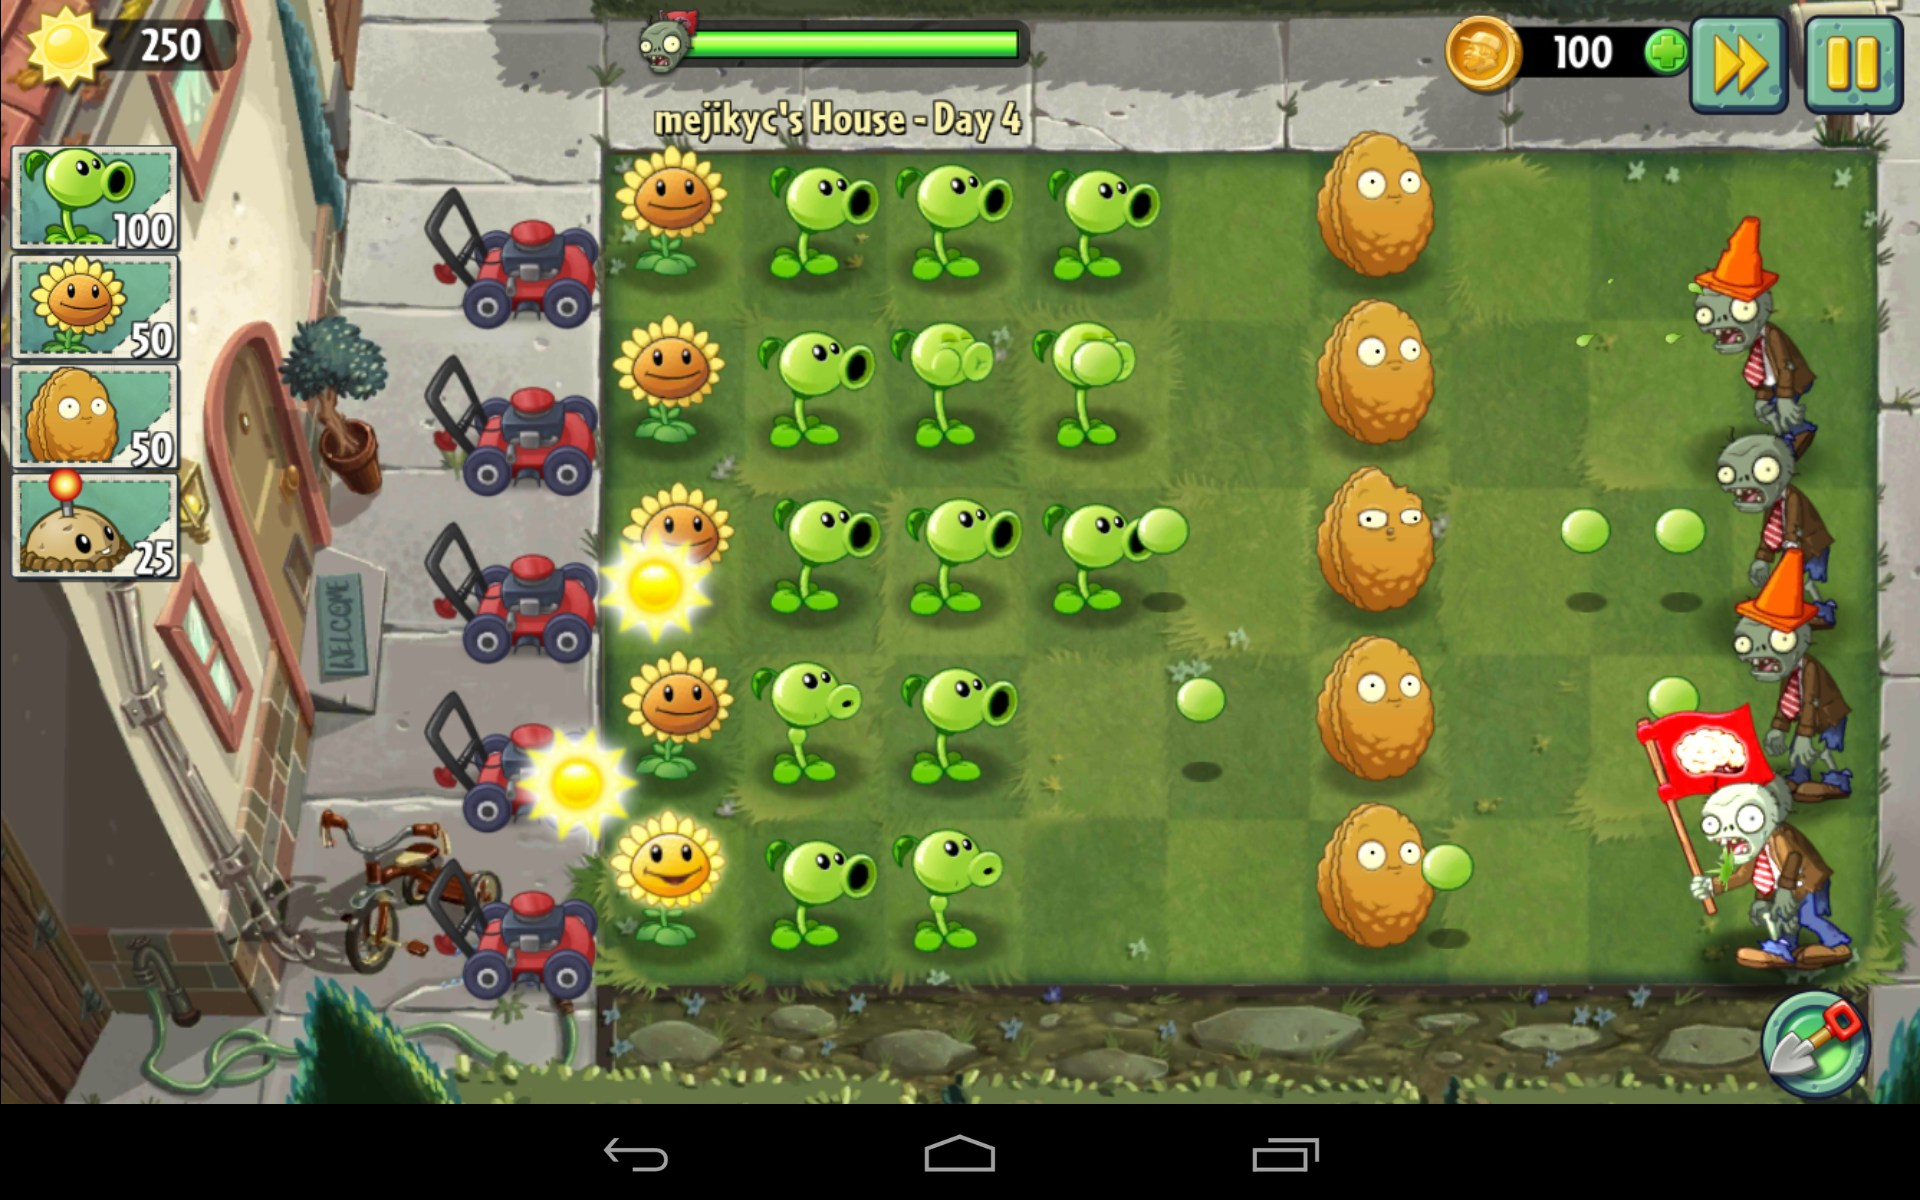 Plants Vs Zombies 2 Juegos Para Android 2018 Descarga Gratis